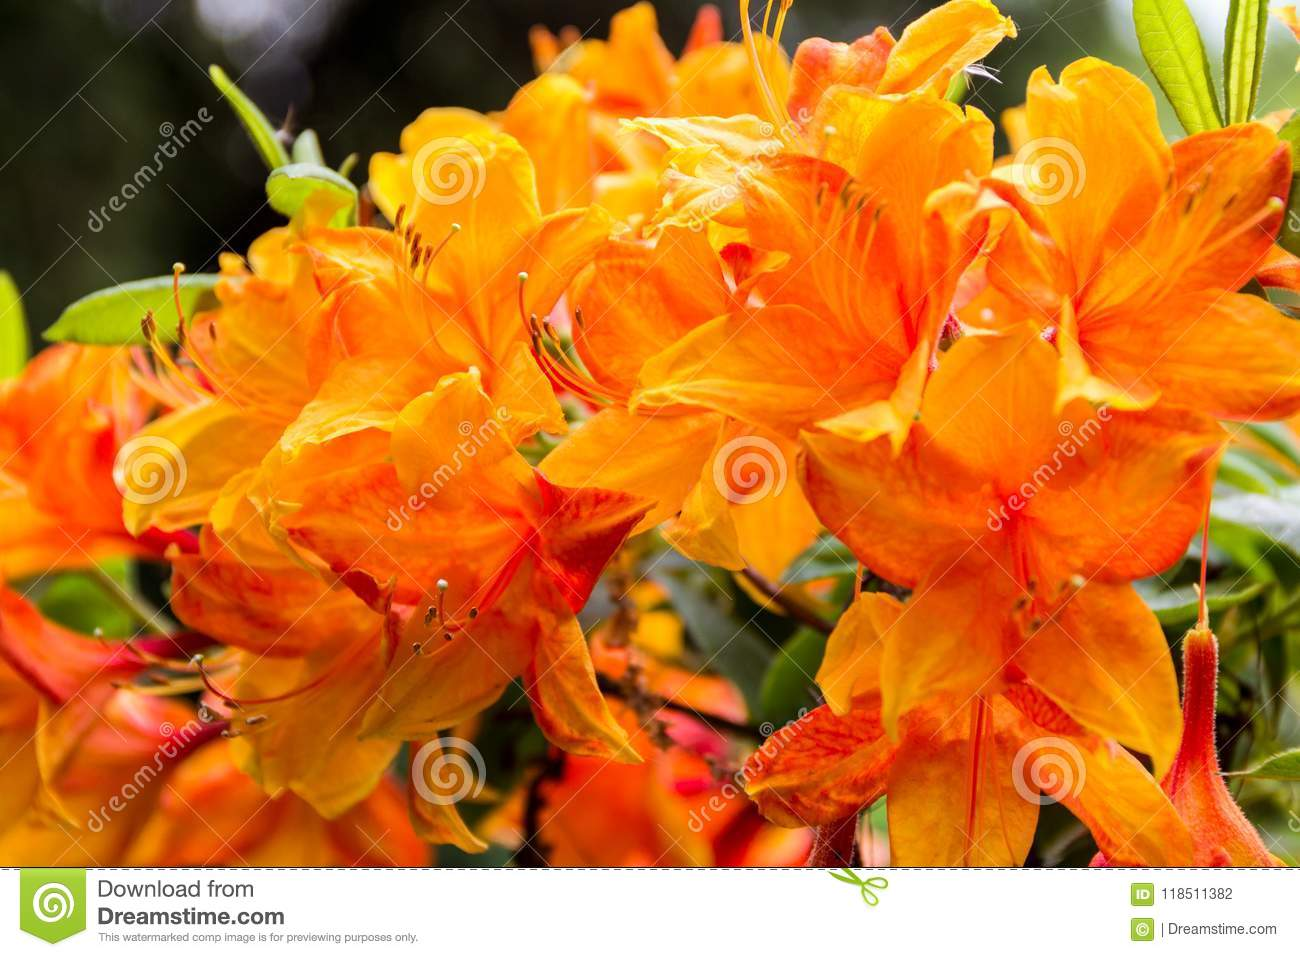 Spring flowers close up large saggy flower for design stock photo download spring flowers close up large saggy flower for design stock photo mightylinksfo